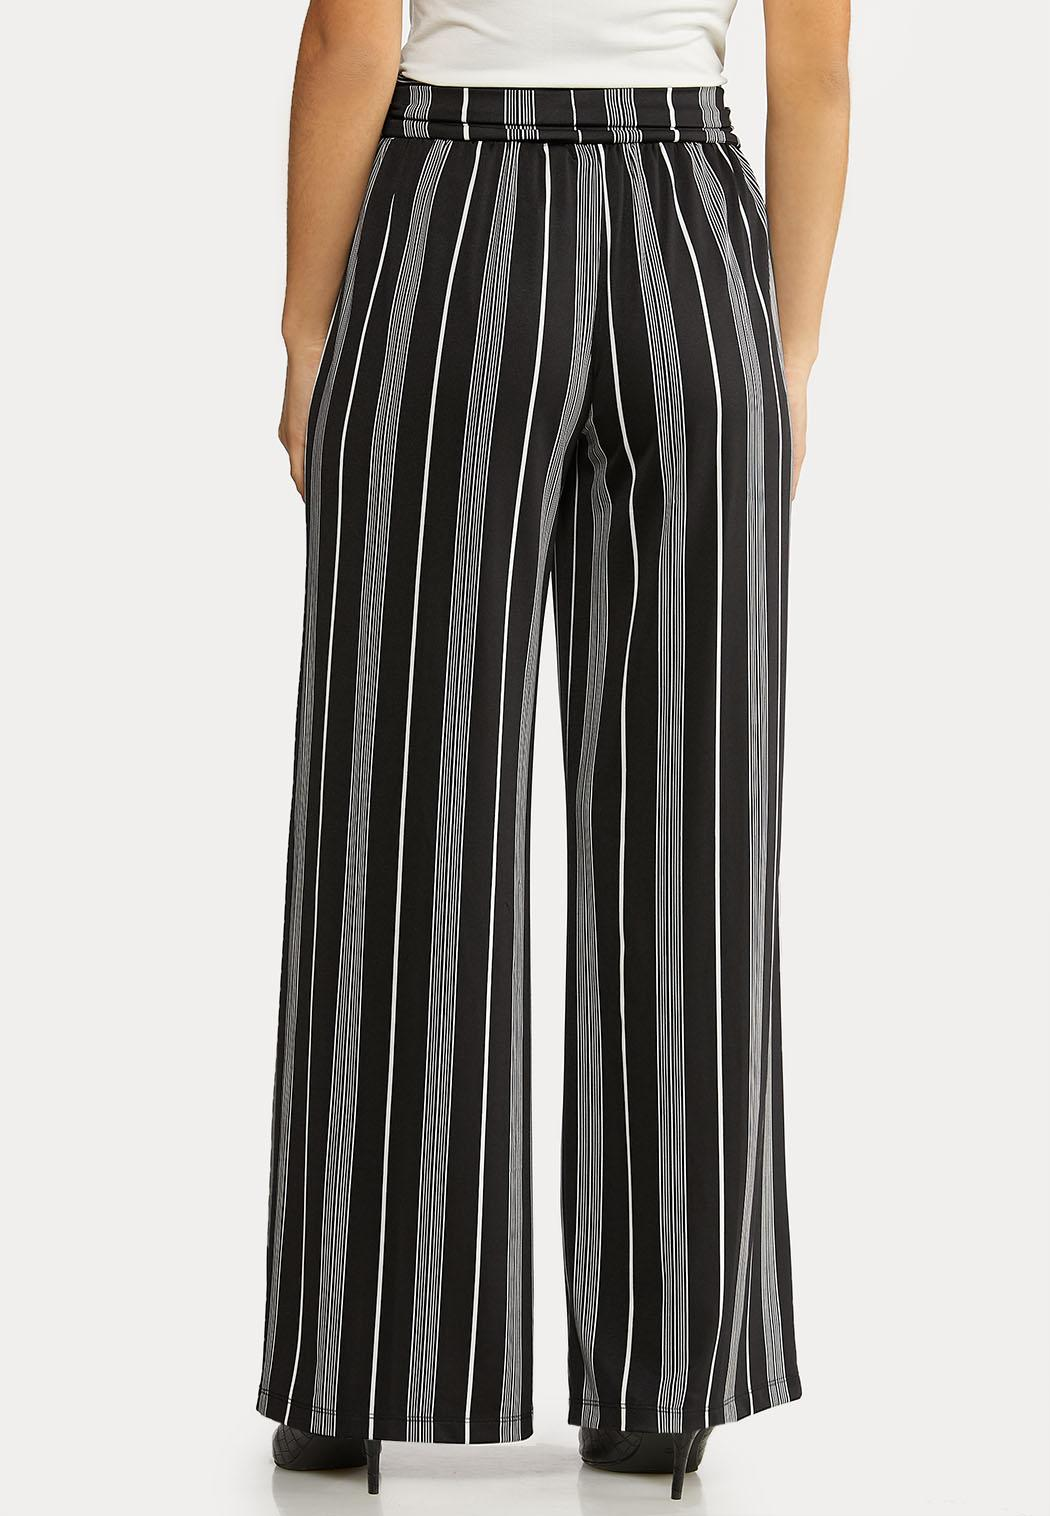 Striped Tie Belted Pants (Item #44104893)